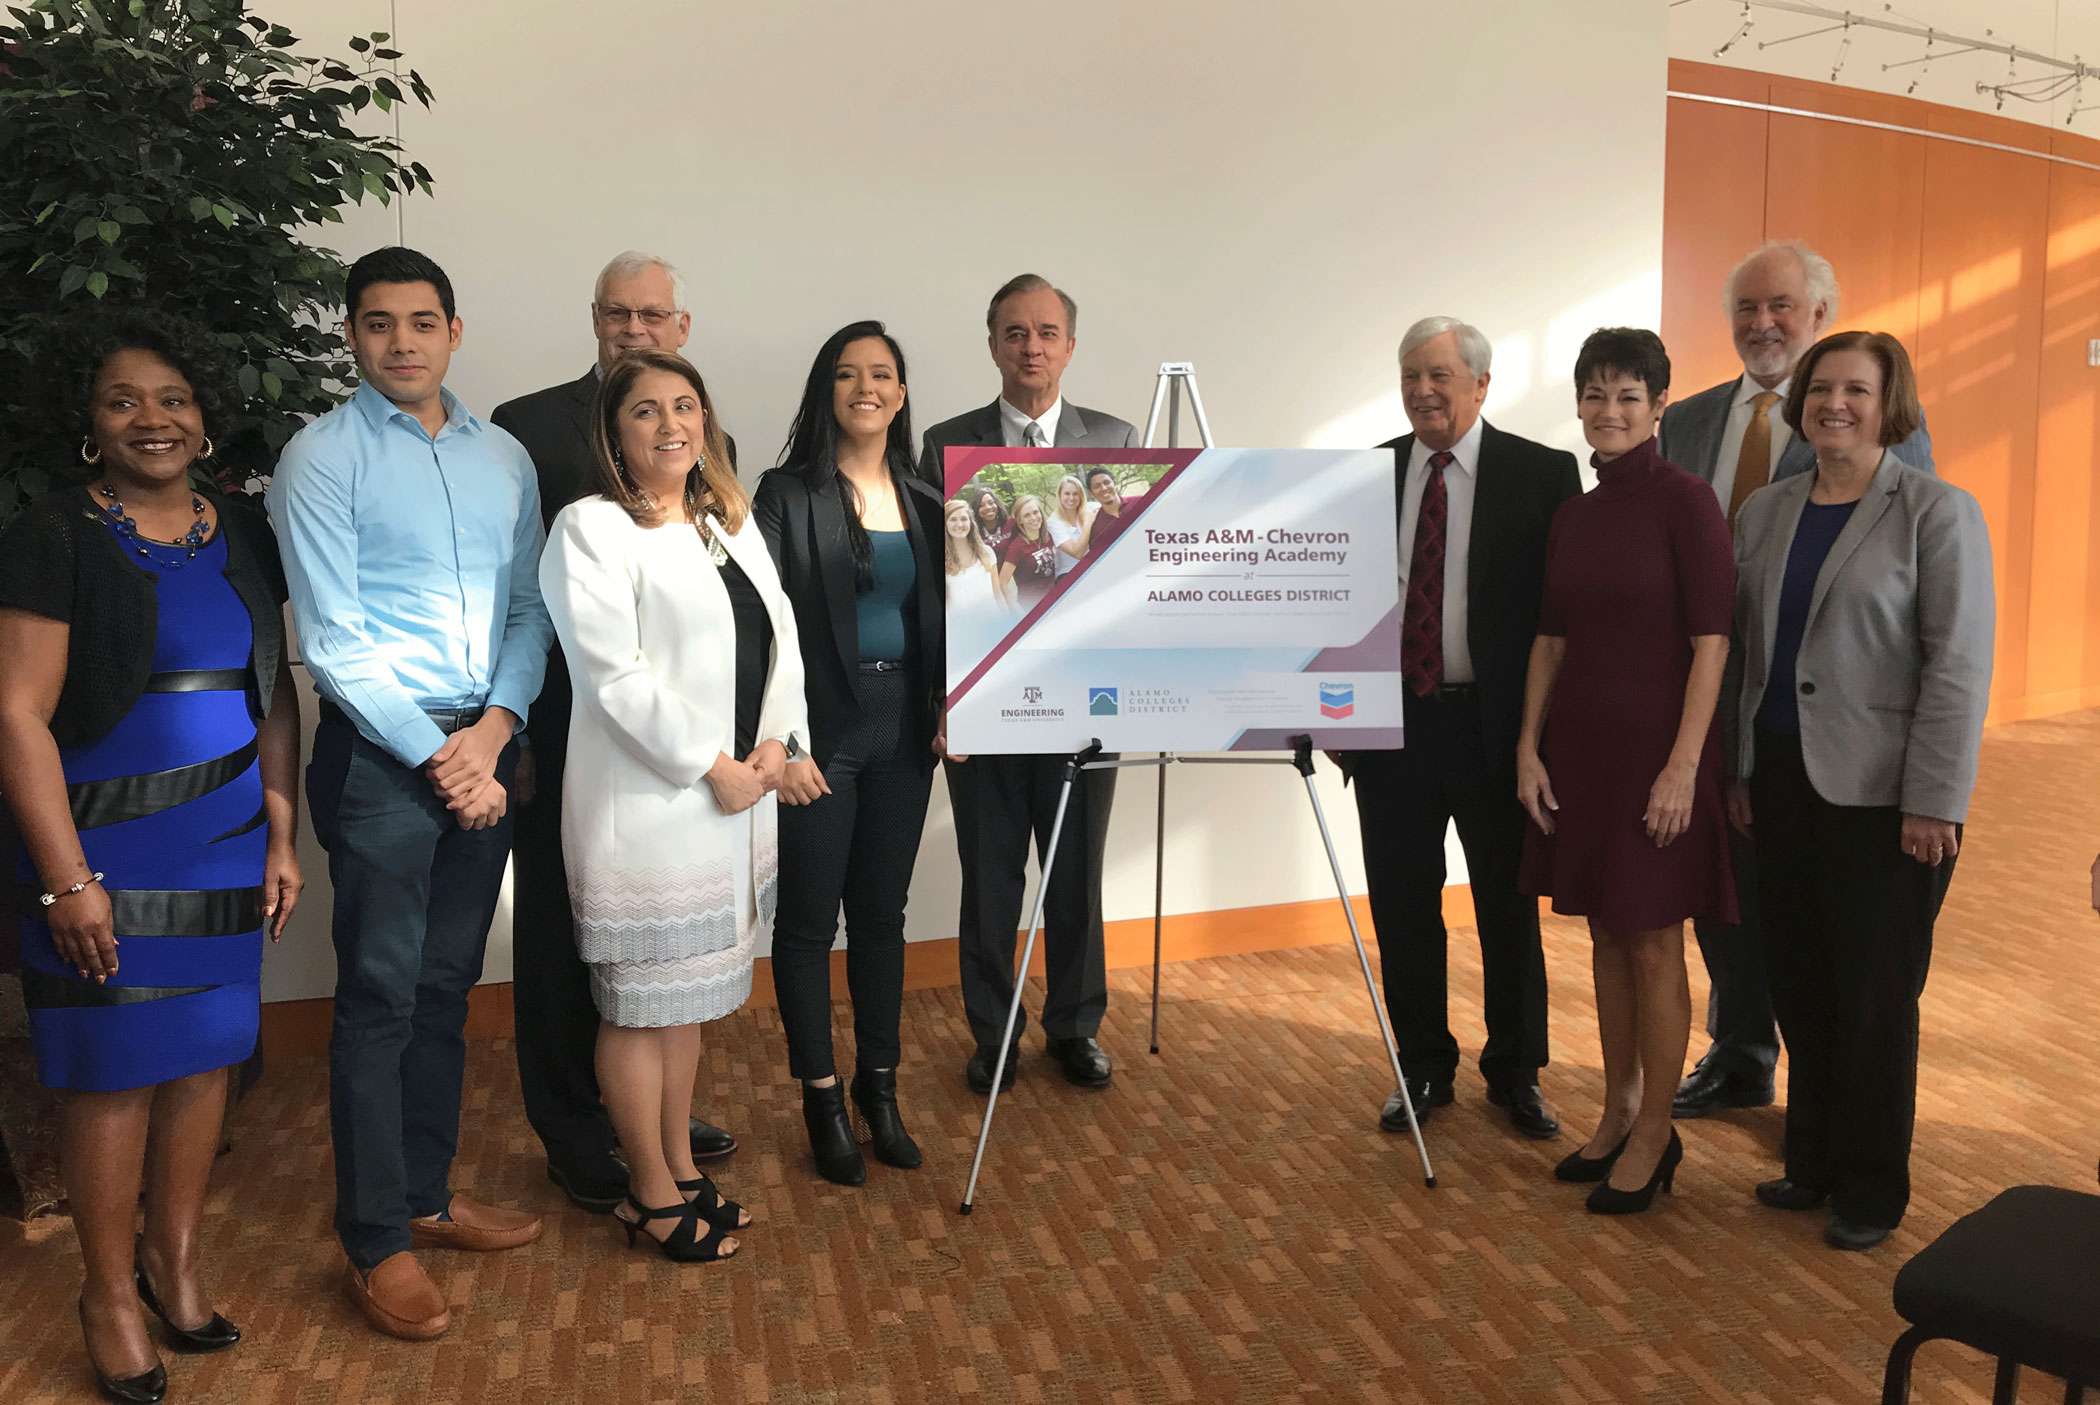 Texas A M Engineering And Alamo Colleges District Co Enrollment Program To Begin Offering Classes Fall 2018 Texas A M University Engineering